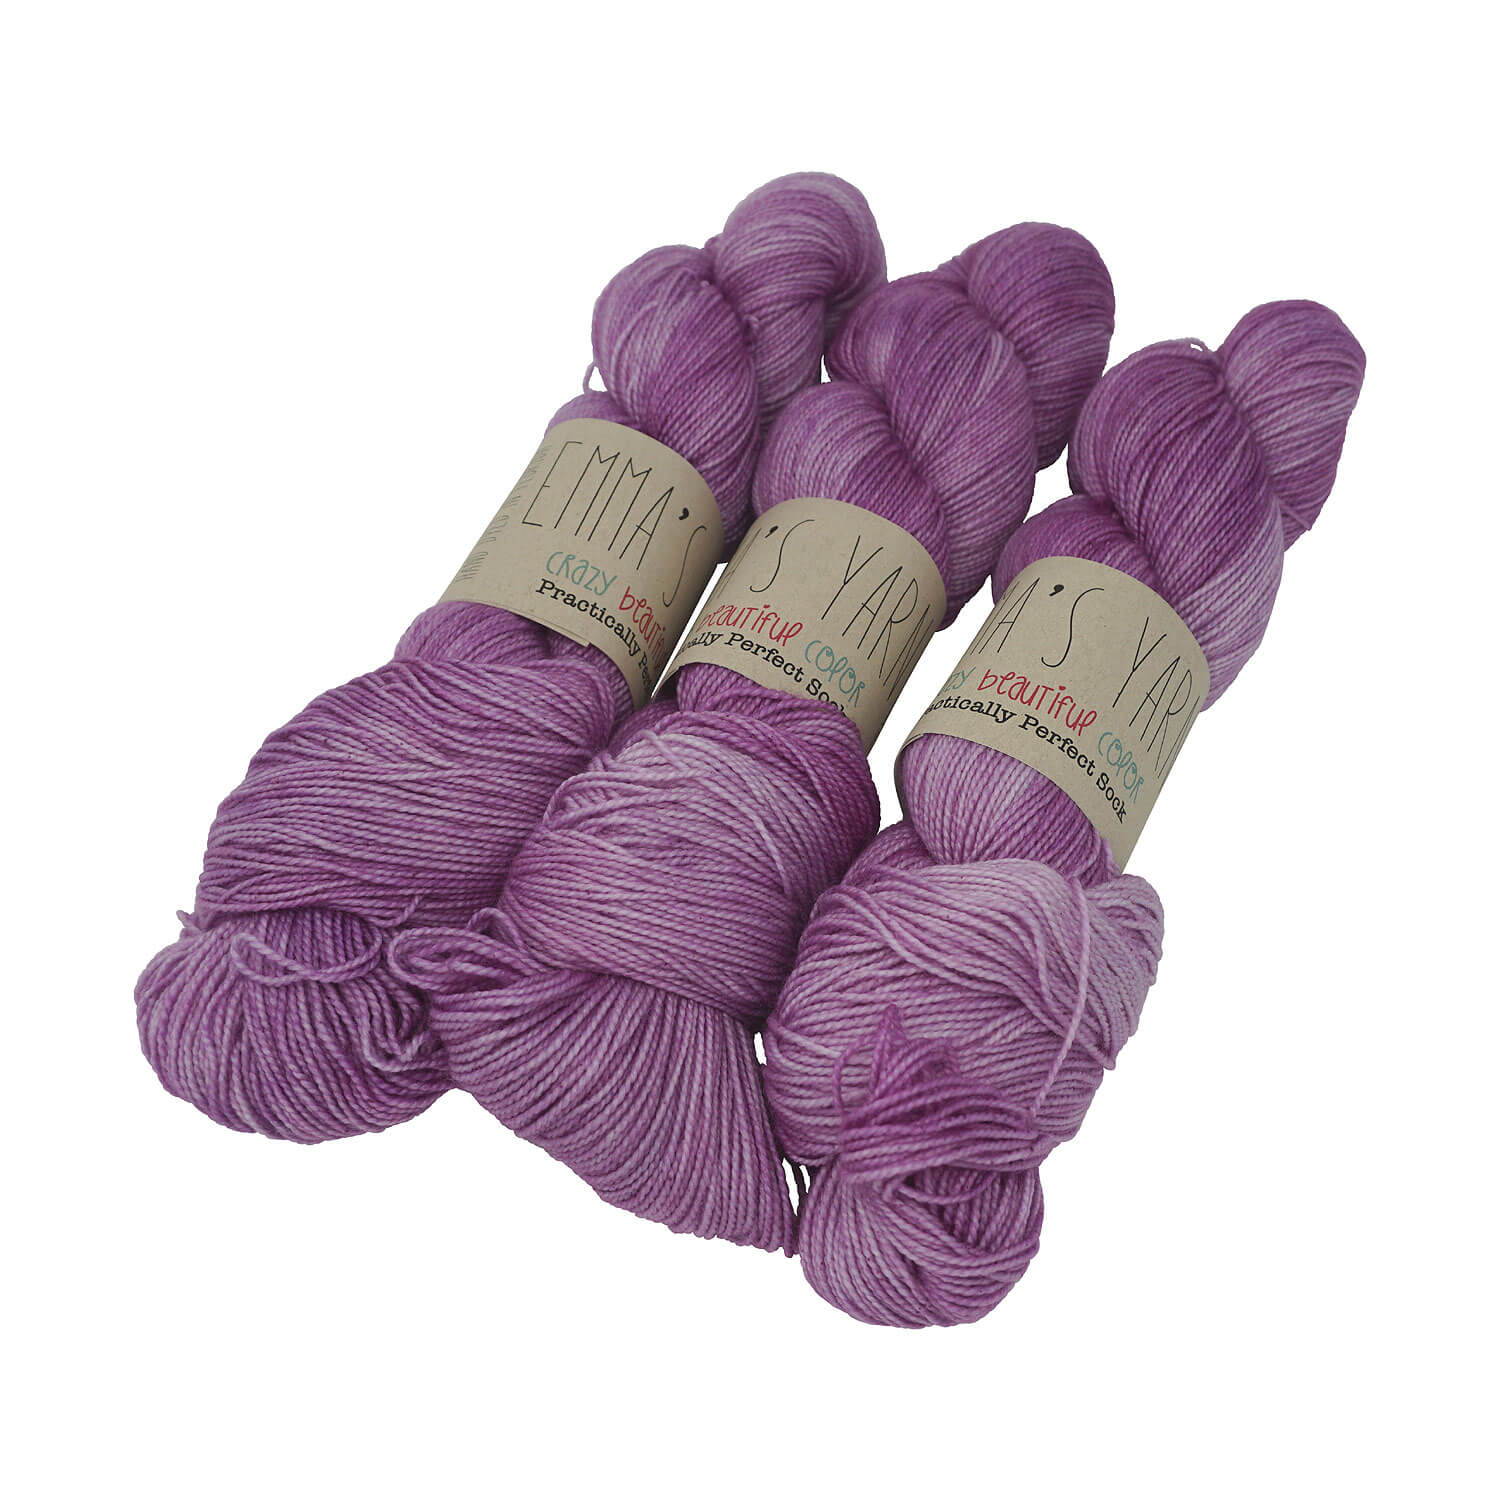 Emma's Yarn - Practically Perfect Sock - 100g - Lilac You Alot